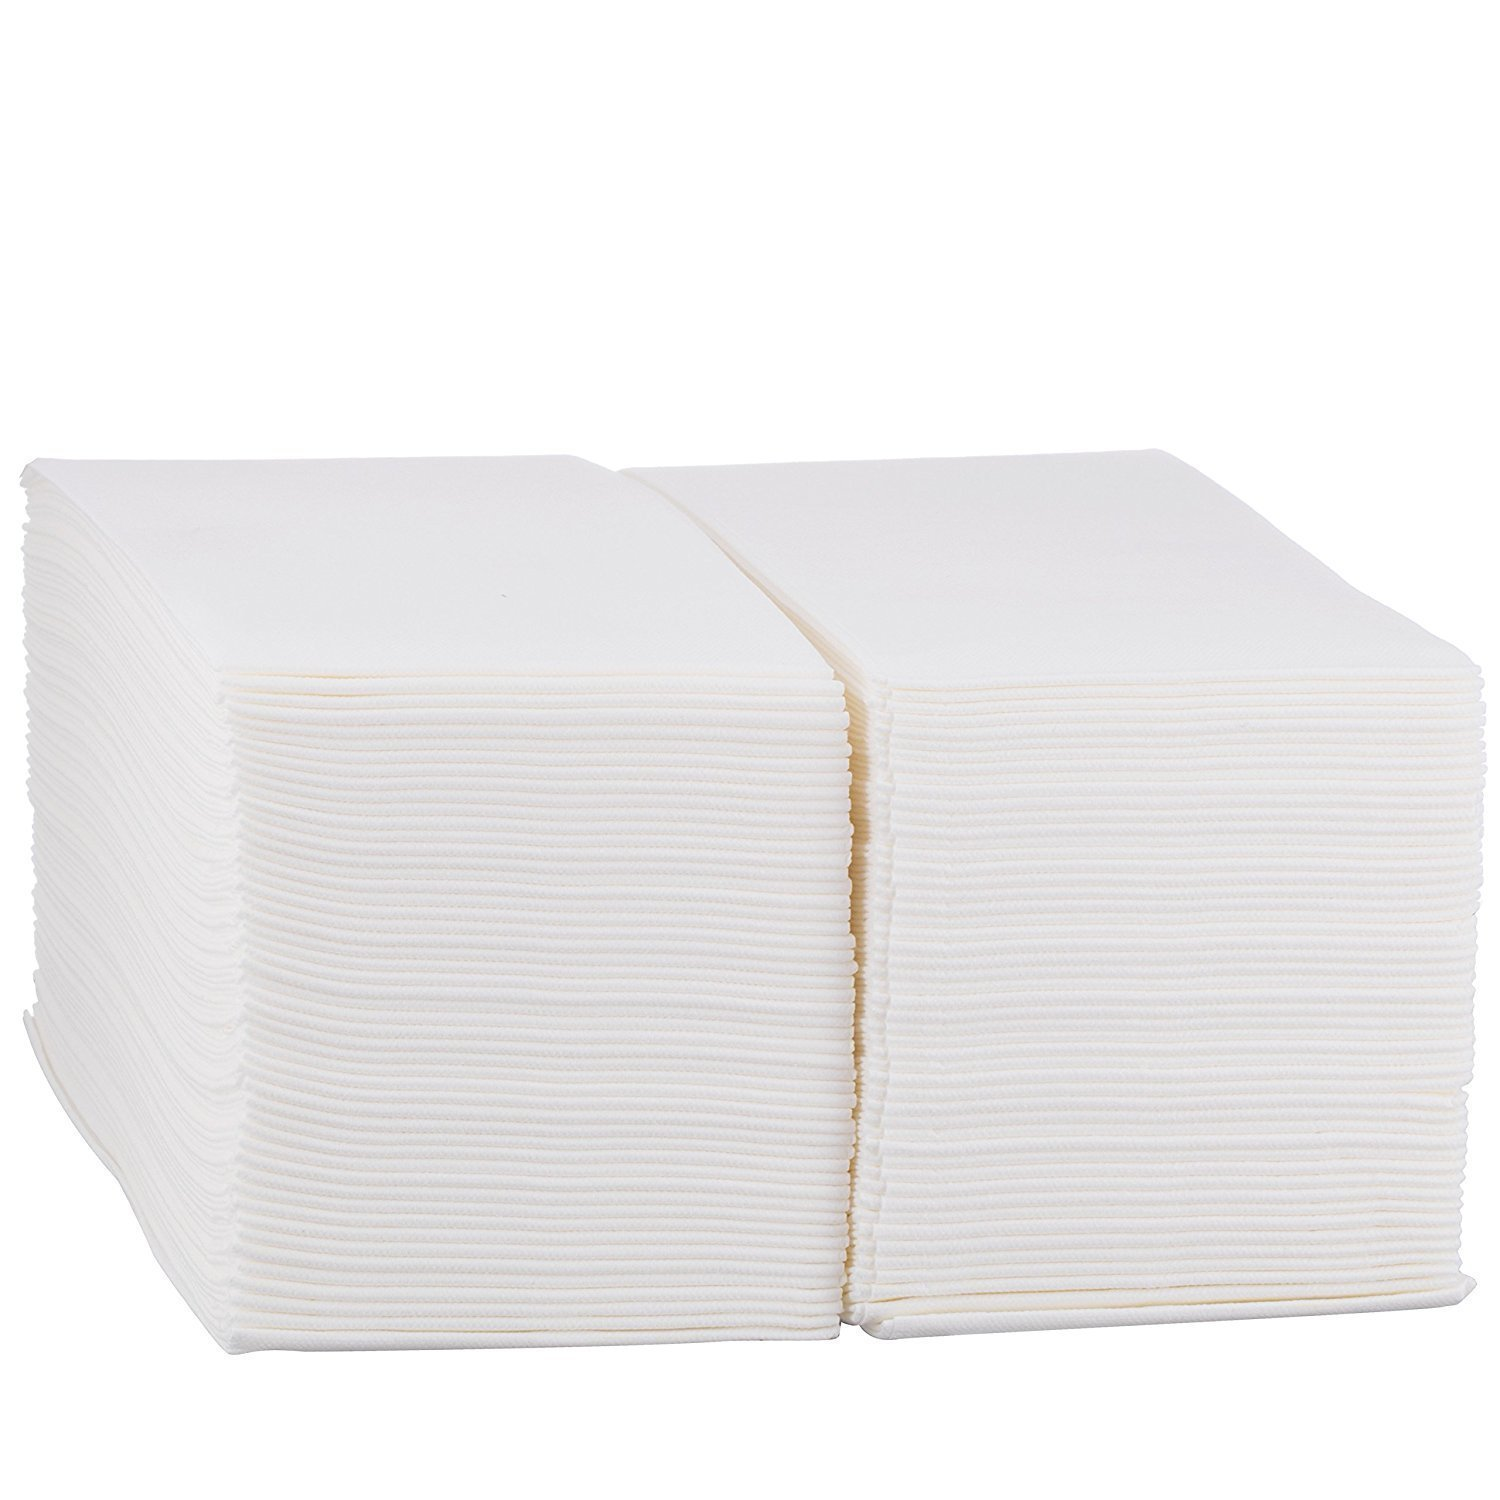 Disposable Guest Towels Paper Napkins – Soft, Absorbent, Airlaid Linen-Like Bath Tissue for Kitchen, Bathroom or Weddings, White Cloth-Like Towel (200 Pack)